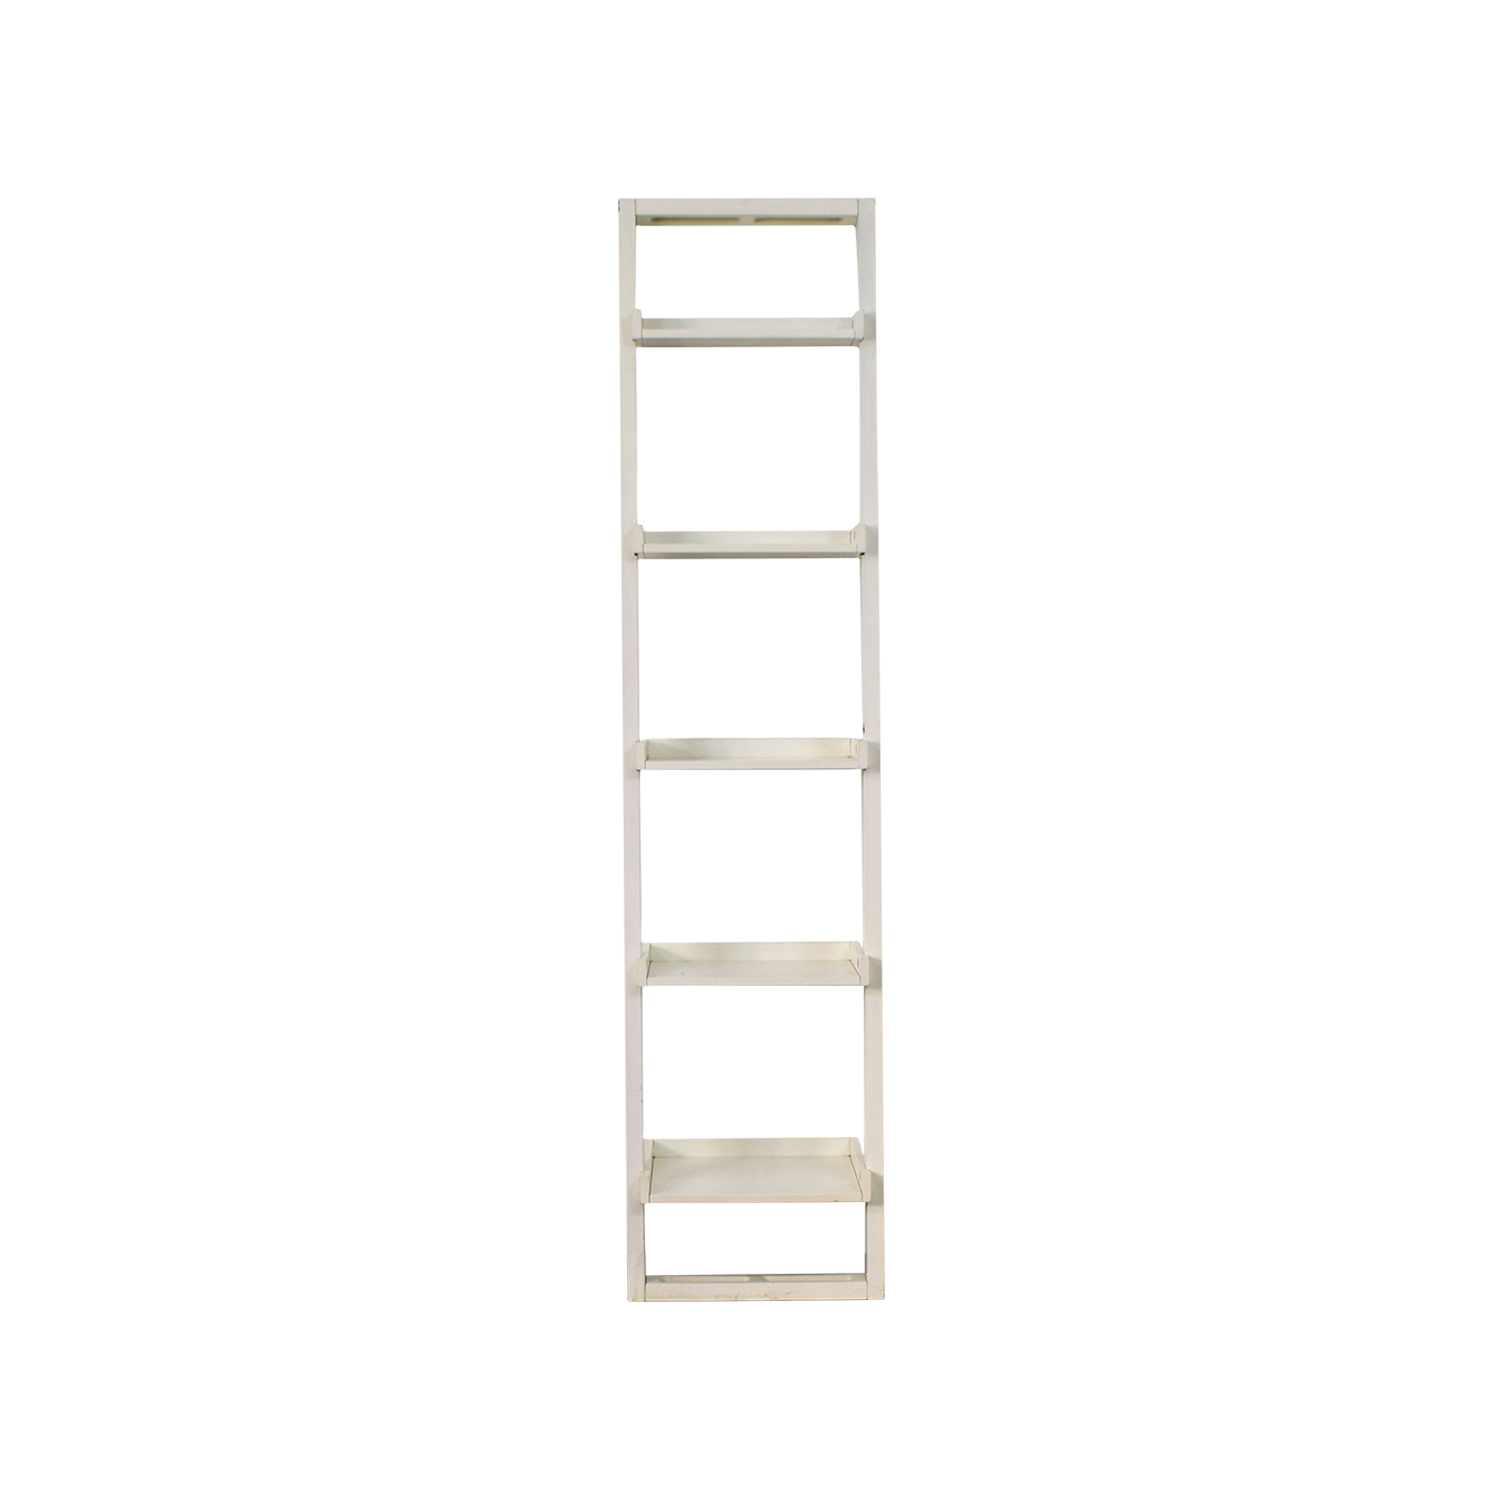 Crate & Barrel Crate & Barrel Sloane Leaning Bookcase price